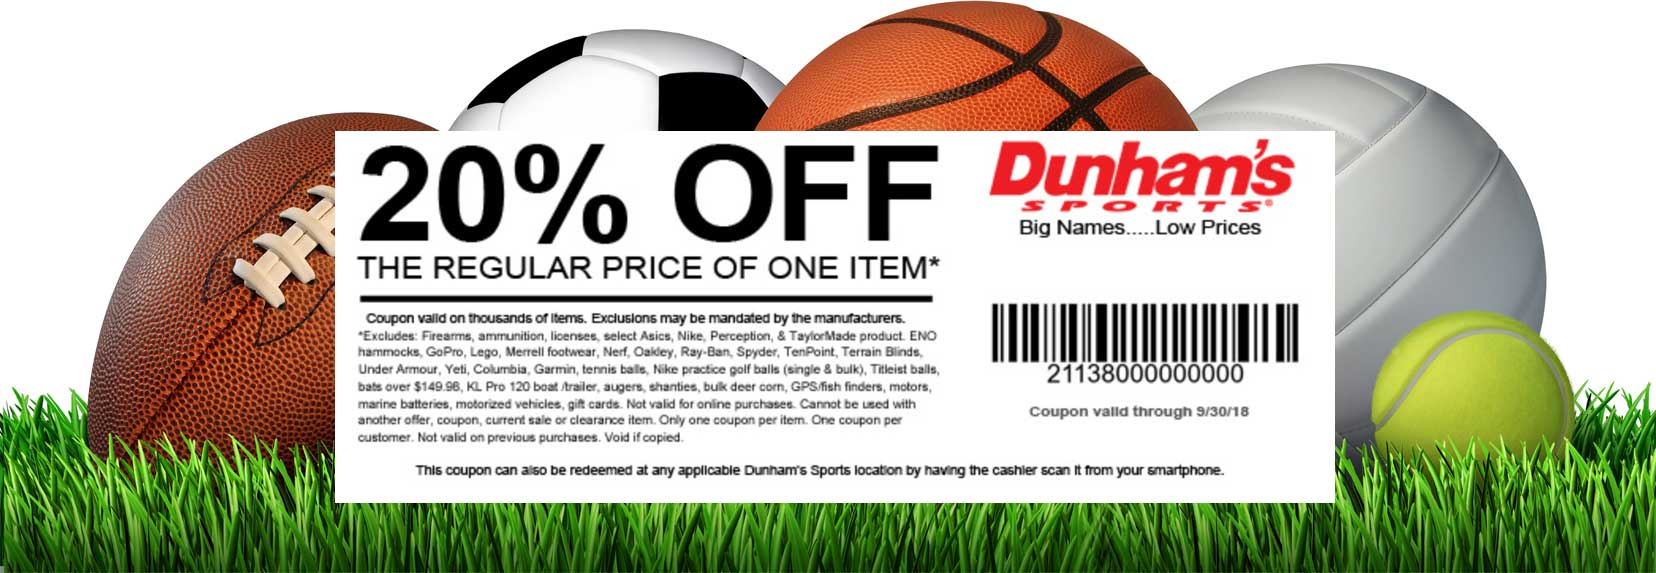 Dunhams Sports Coupon July 2019 20% off a single item at Dunhams Sports